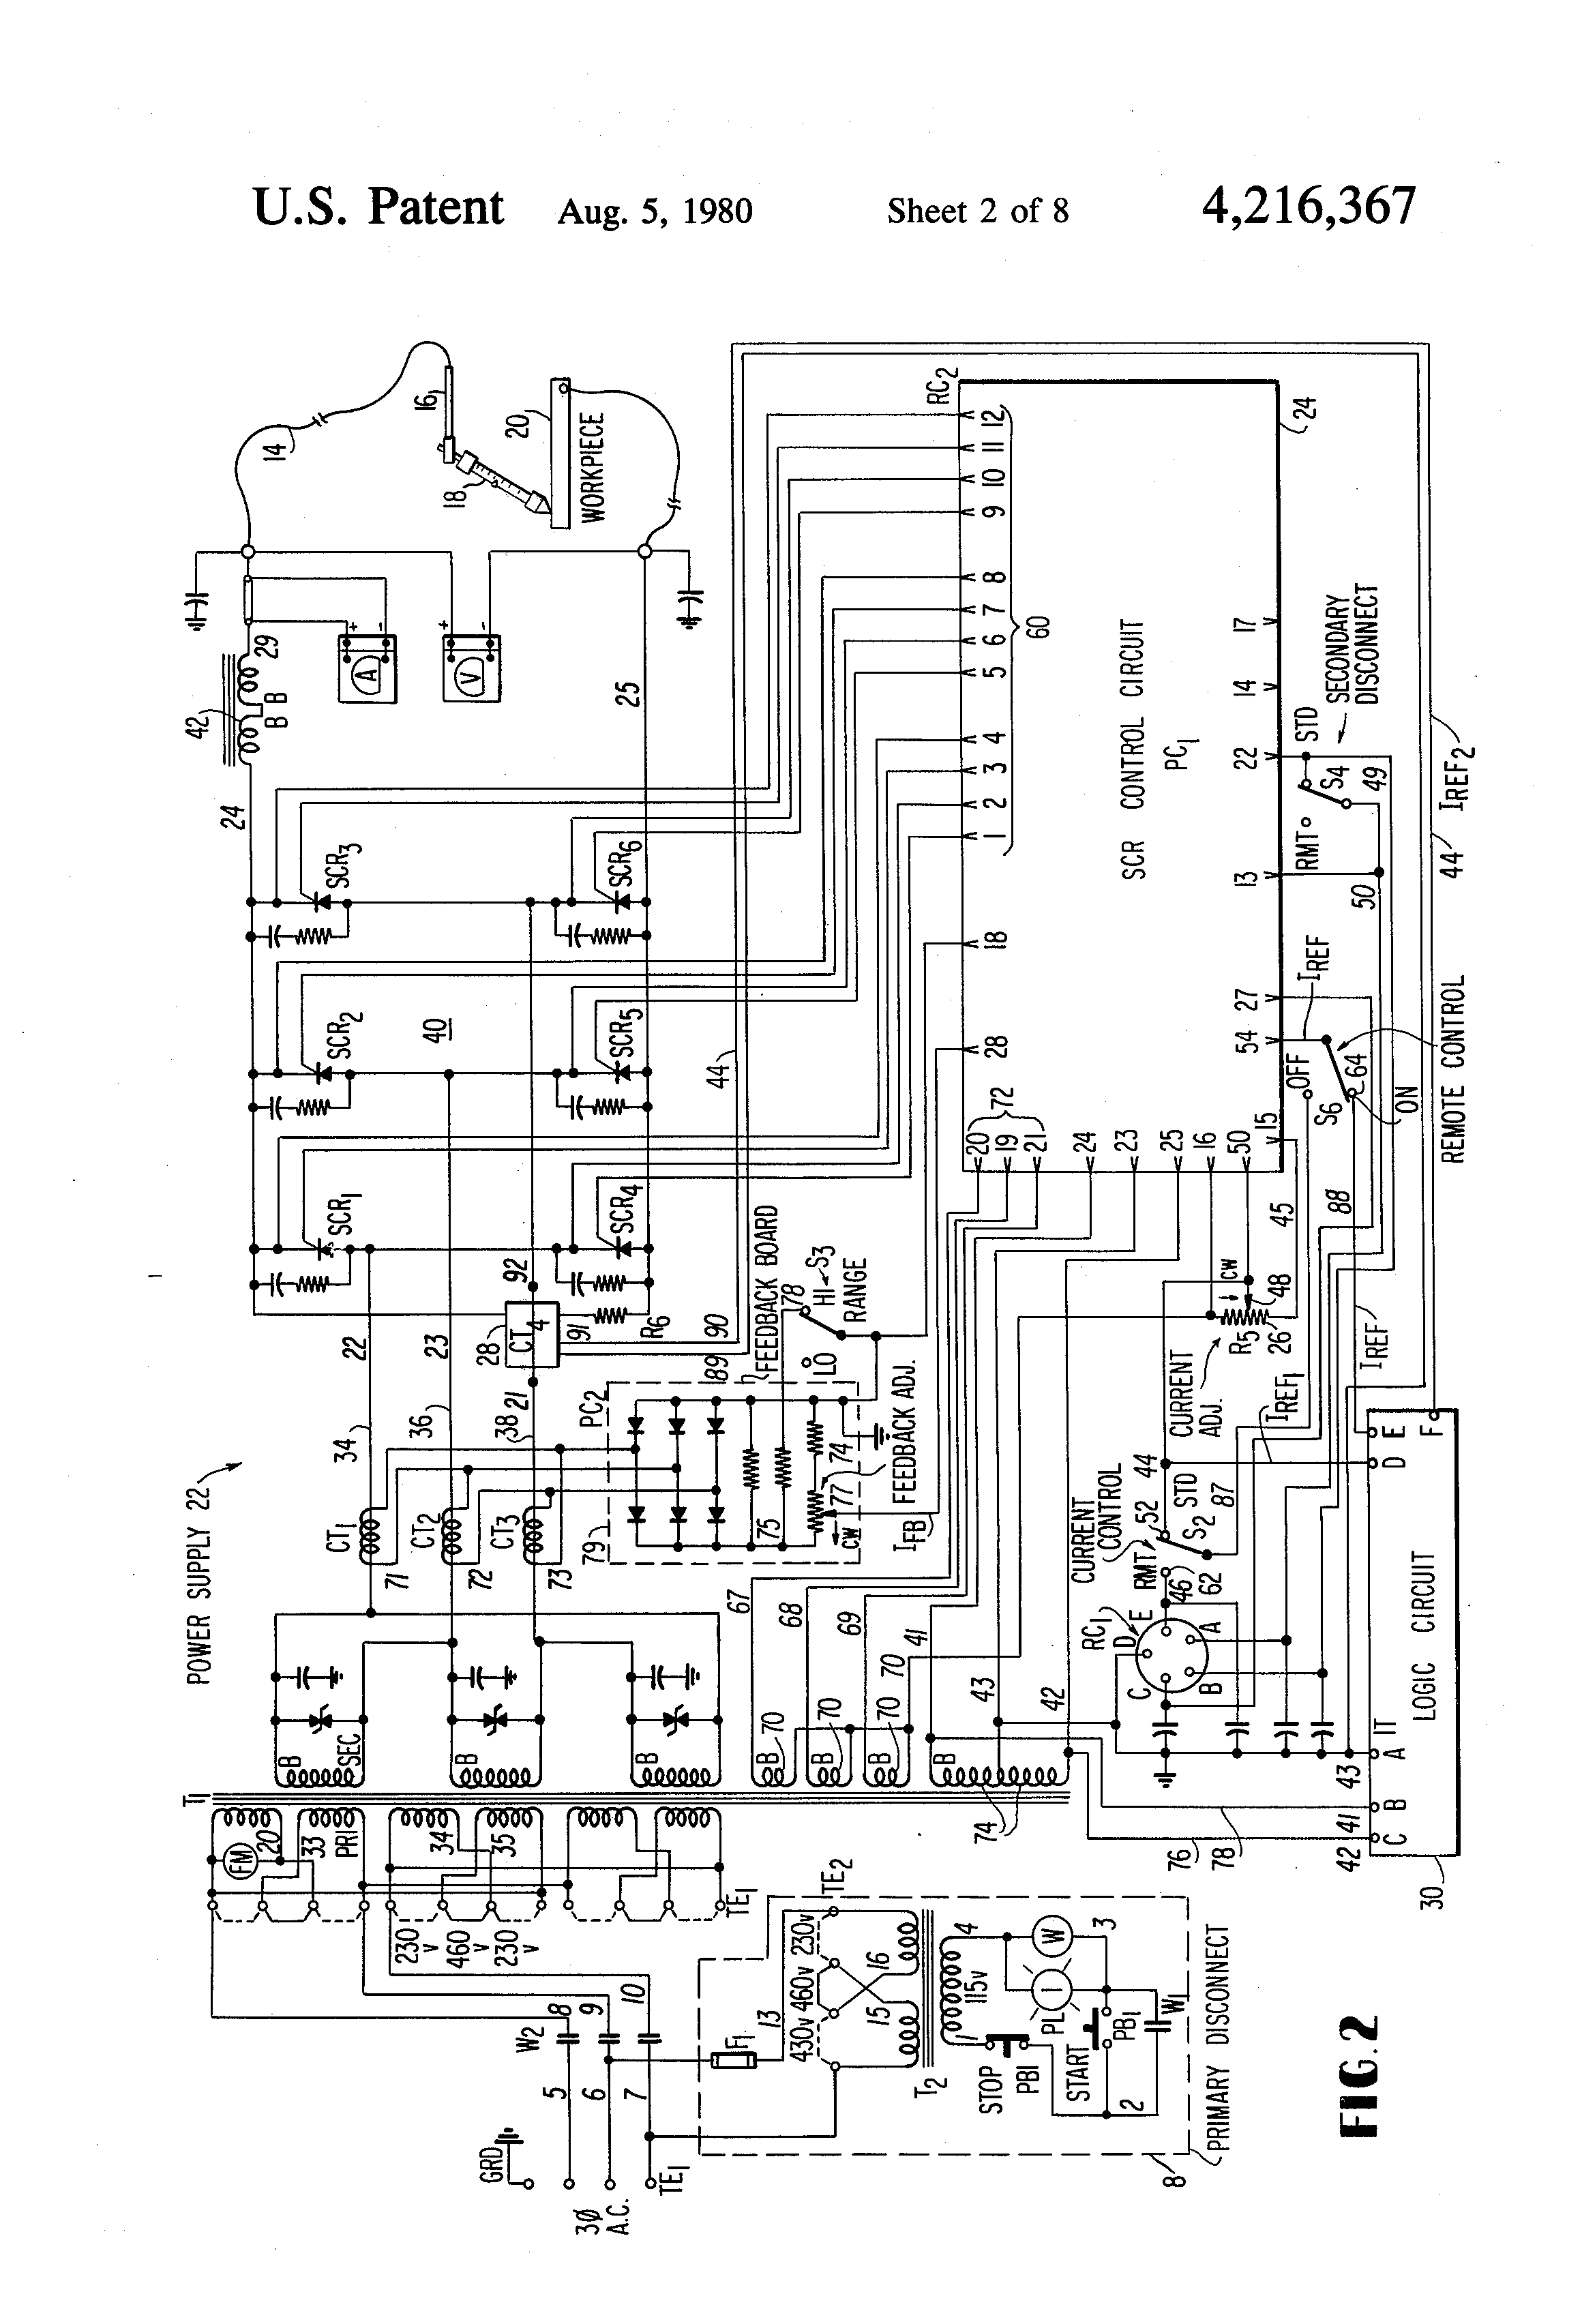 Sa 200 Welder Wiring Diagram Pinterest furthermore Lincoln Welder Wiring Diagram Bobcat additionally Arc Welding Circuit Diagrams also Arc Welding Diagram additionally Wiring Diagram For Lincoln 225 Welder. on welder generator wiring diagram yk210e